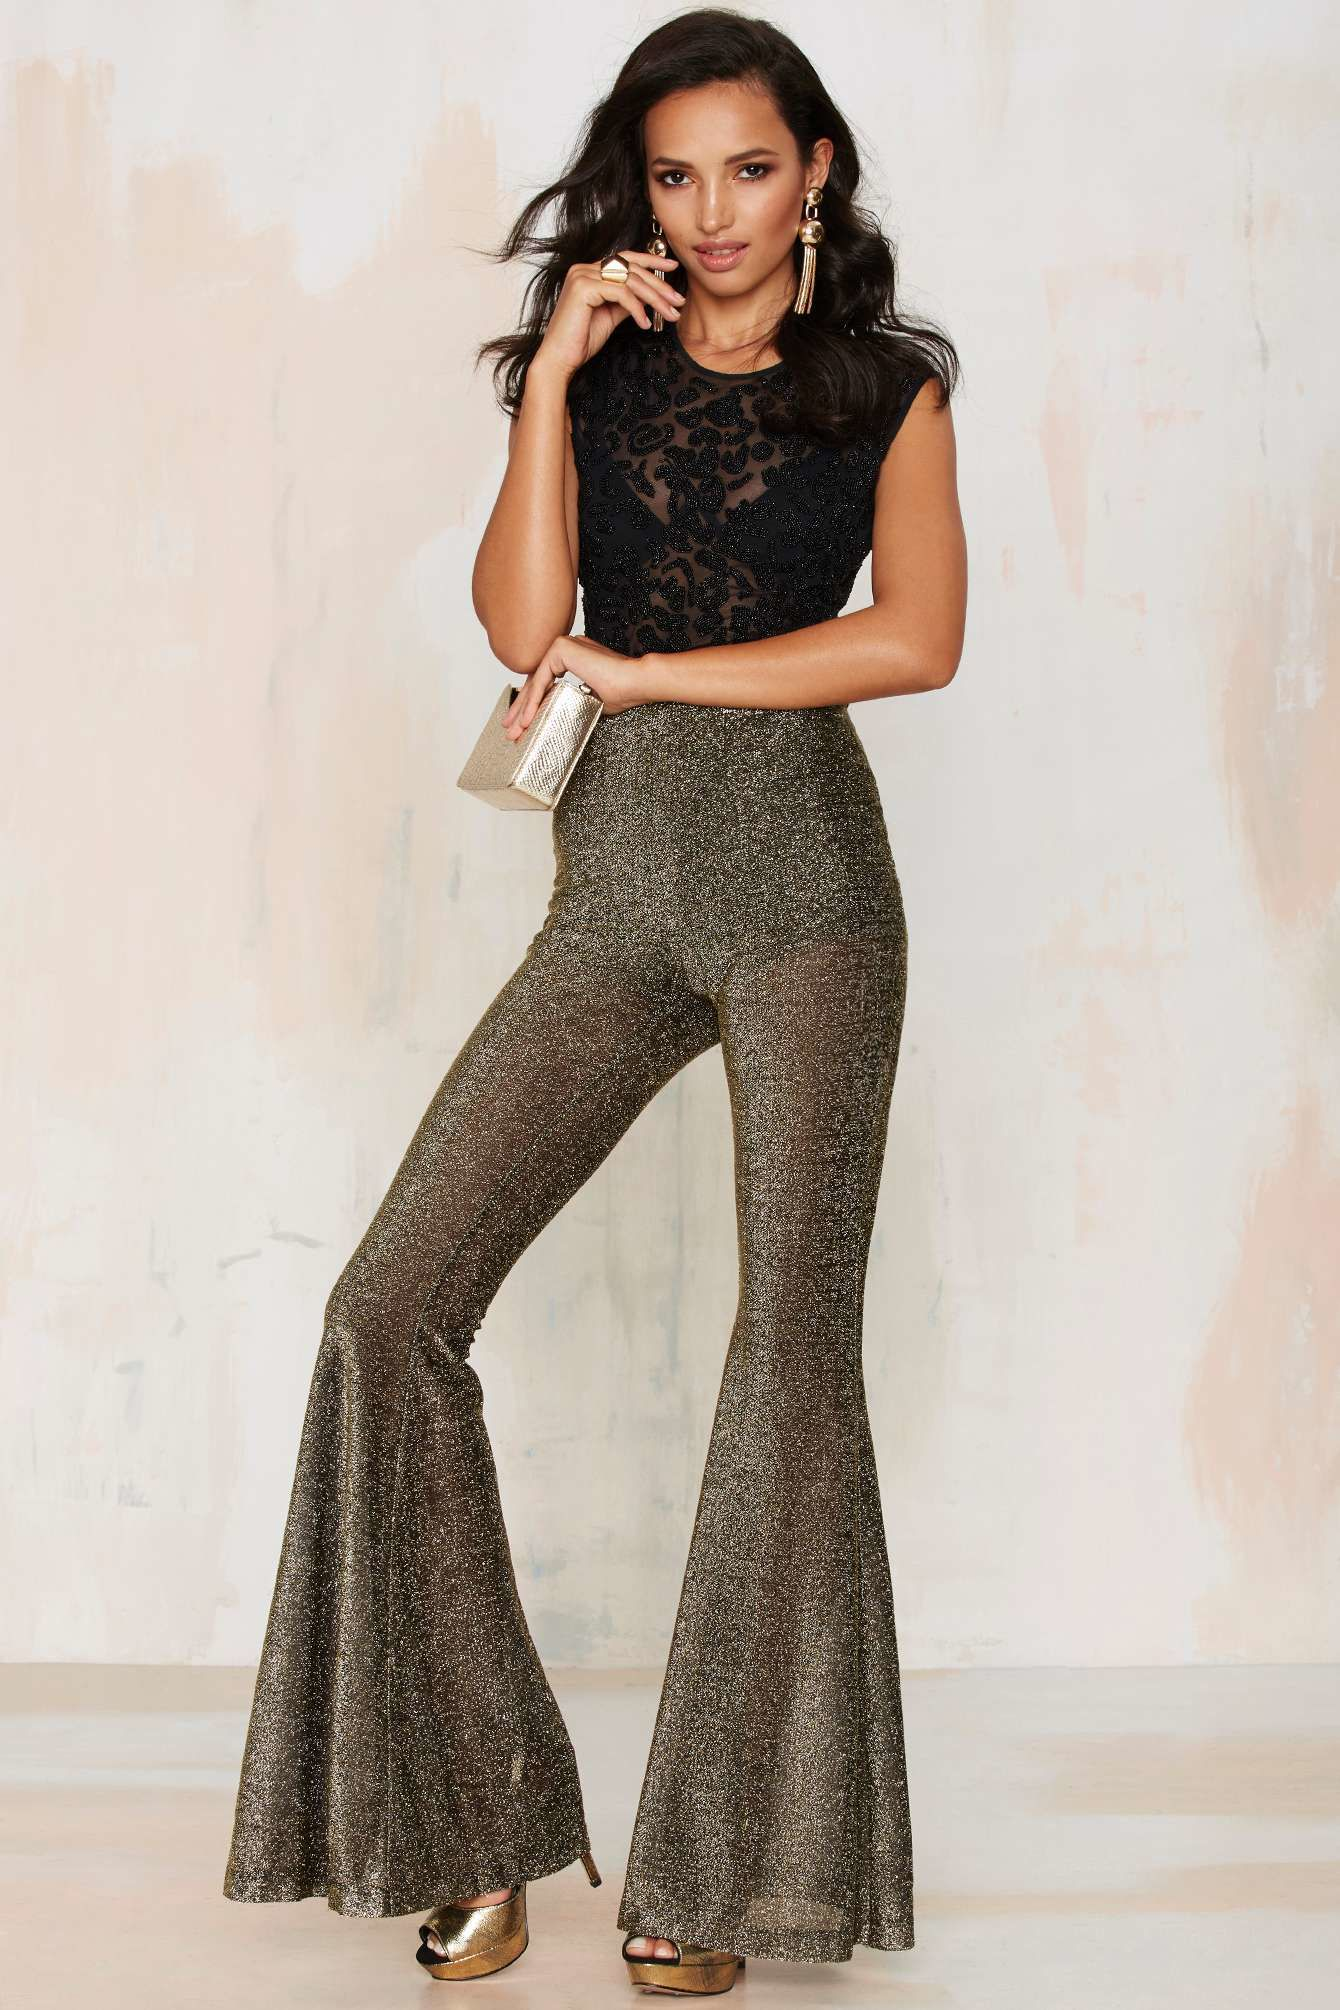 https://cdna.lystit.com/photos/cec2-2015/11/10/nasty-gal-flyin-sparks-metallic-flare-pants-product-3-215575206-normal.jpeg